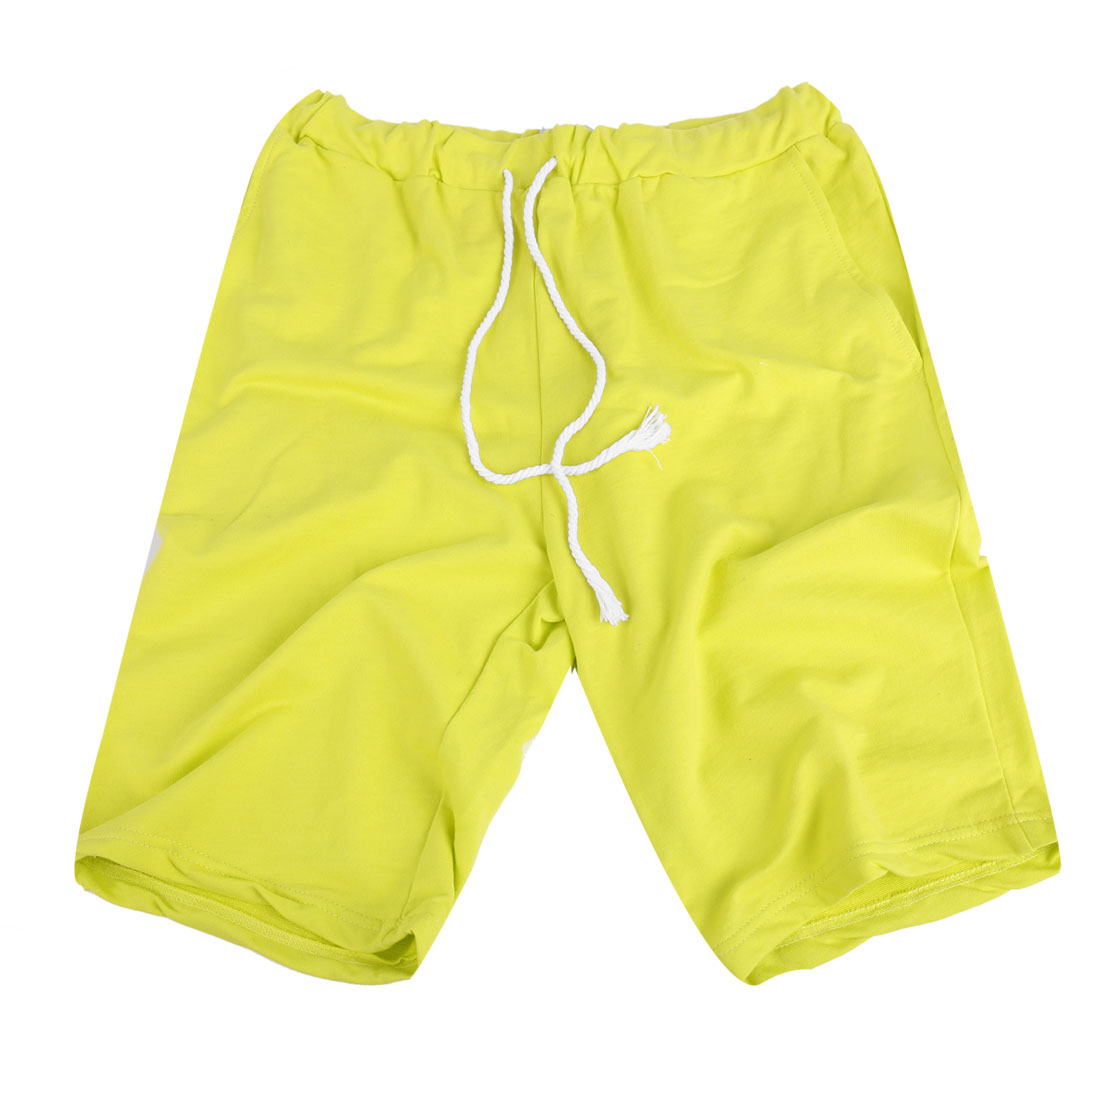 Mens Fluorescent Yellow Drawstring Elastic Waist Short Pants W29